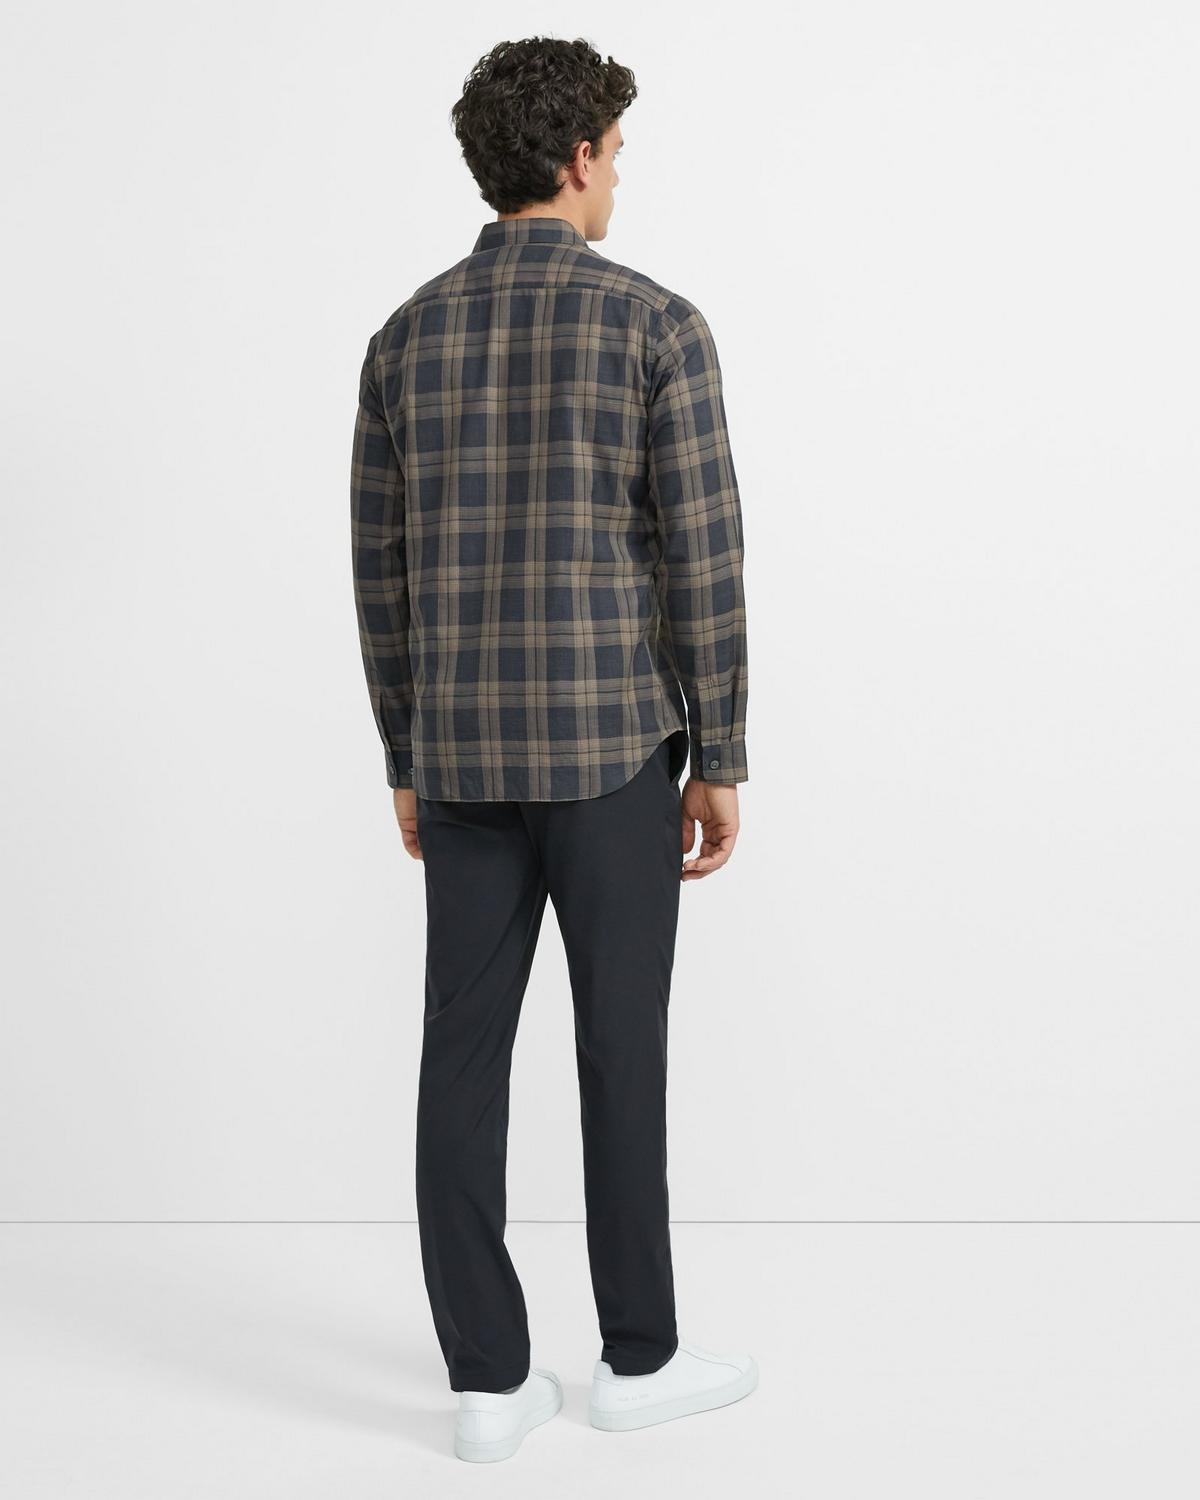 Phoenix Shirt in Plaid Cotton